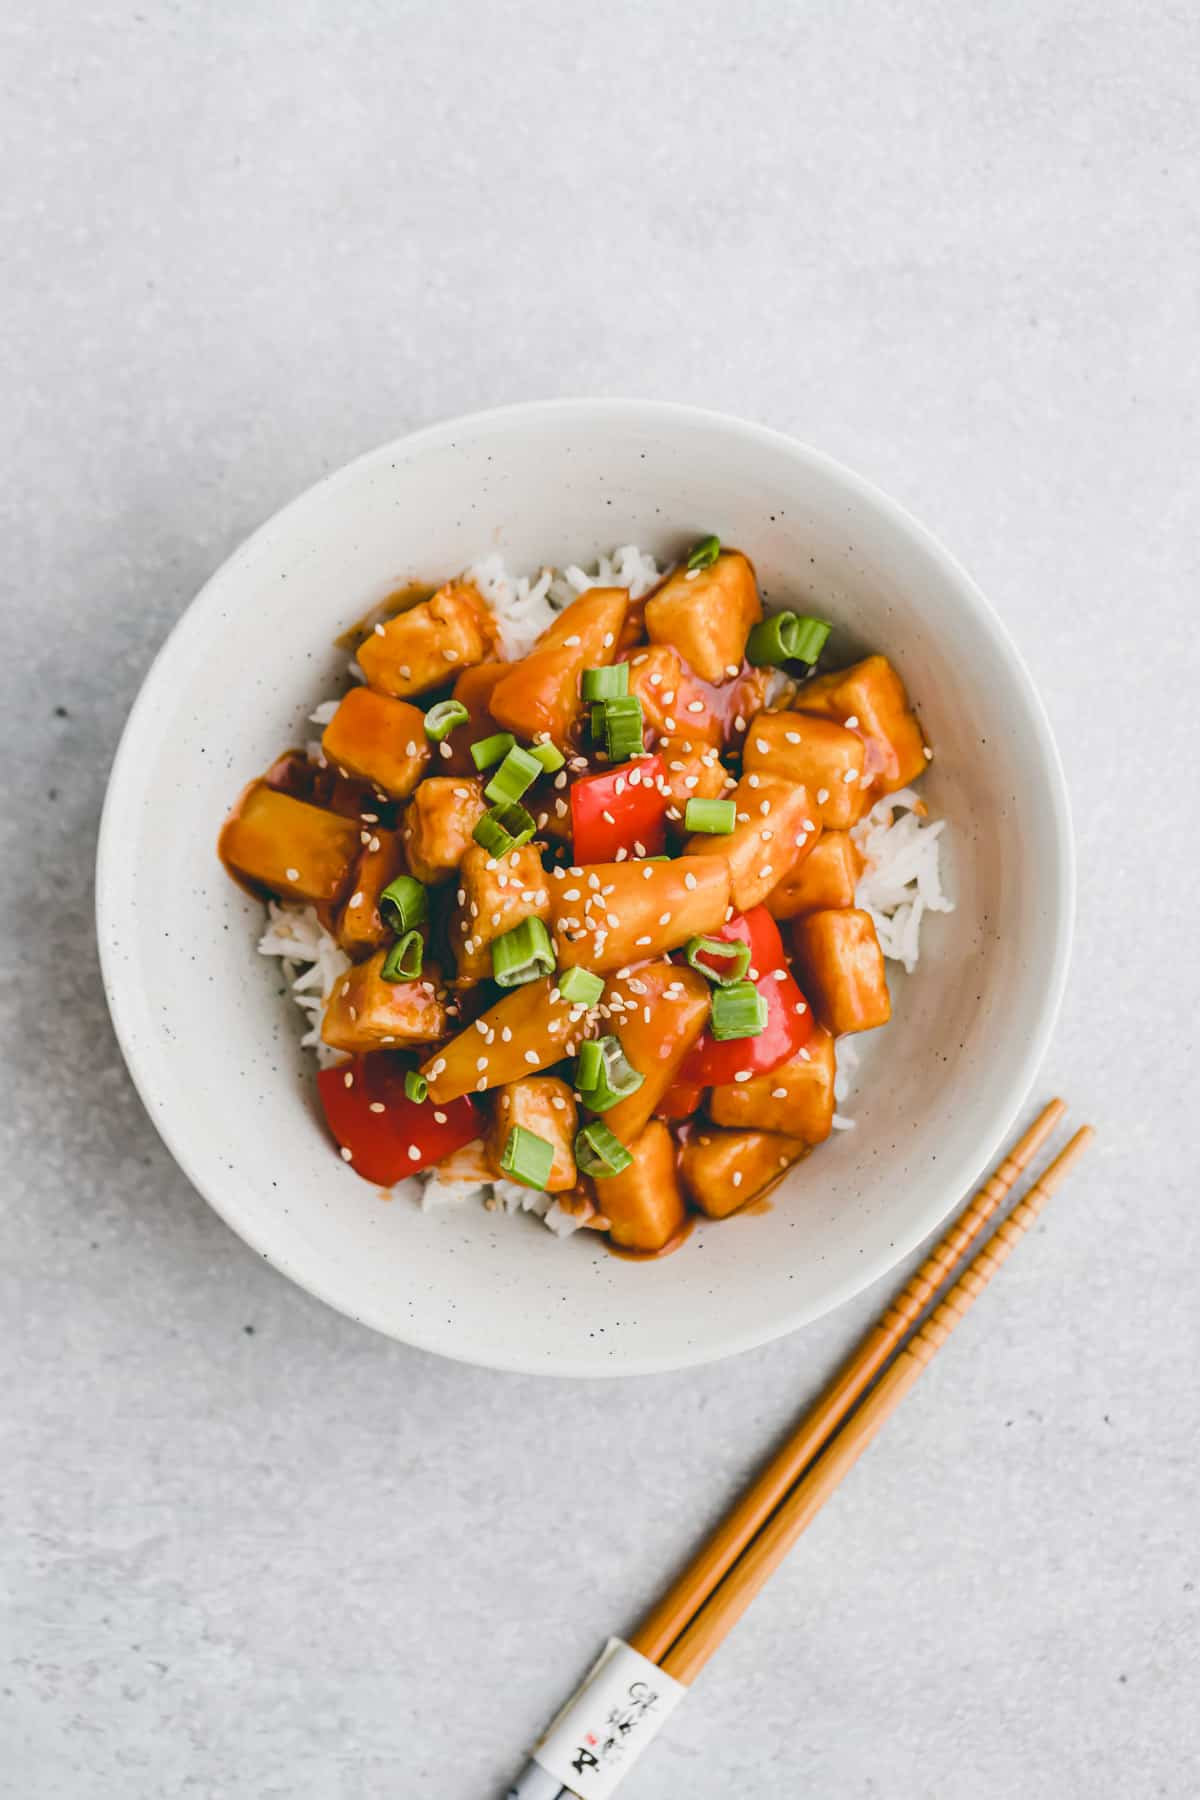 sweet and sour tofu served over rice